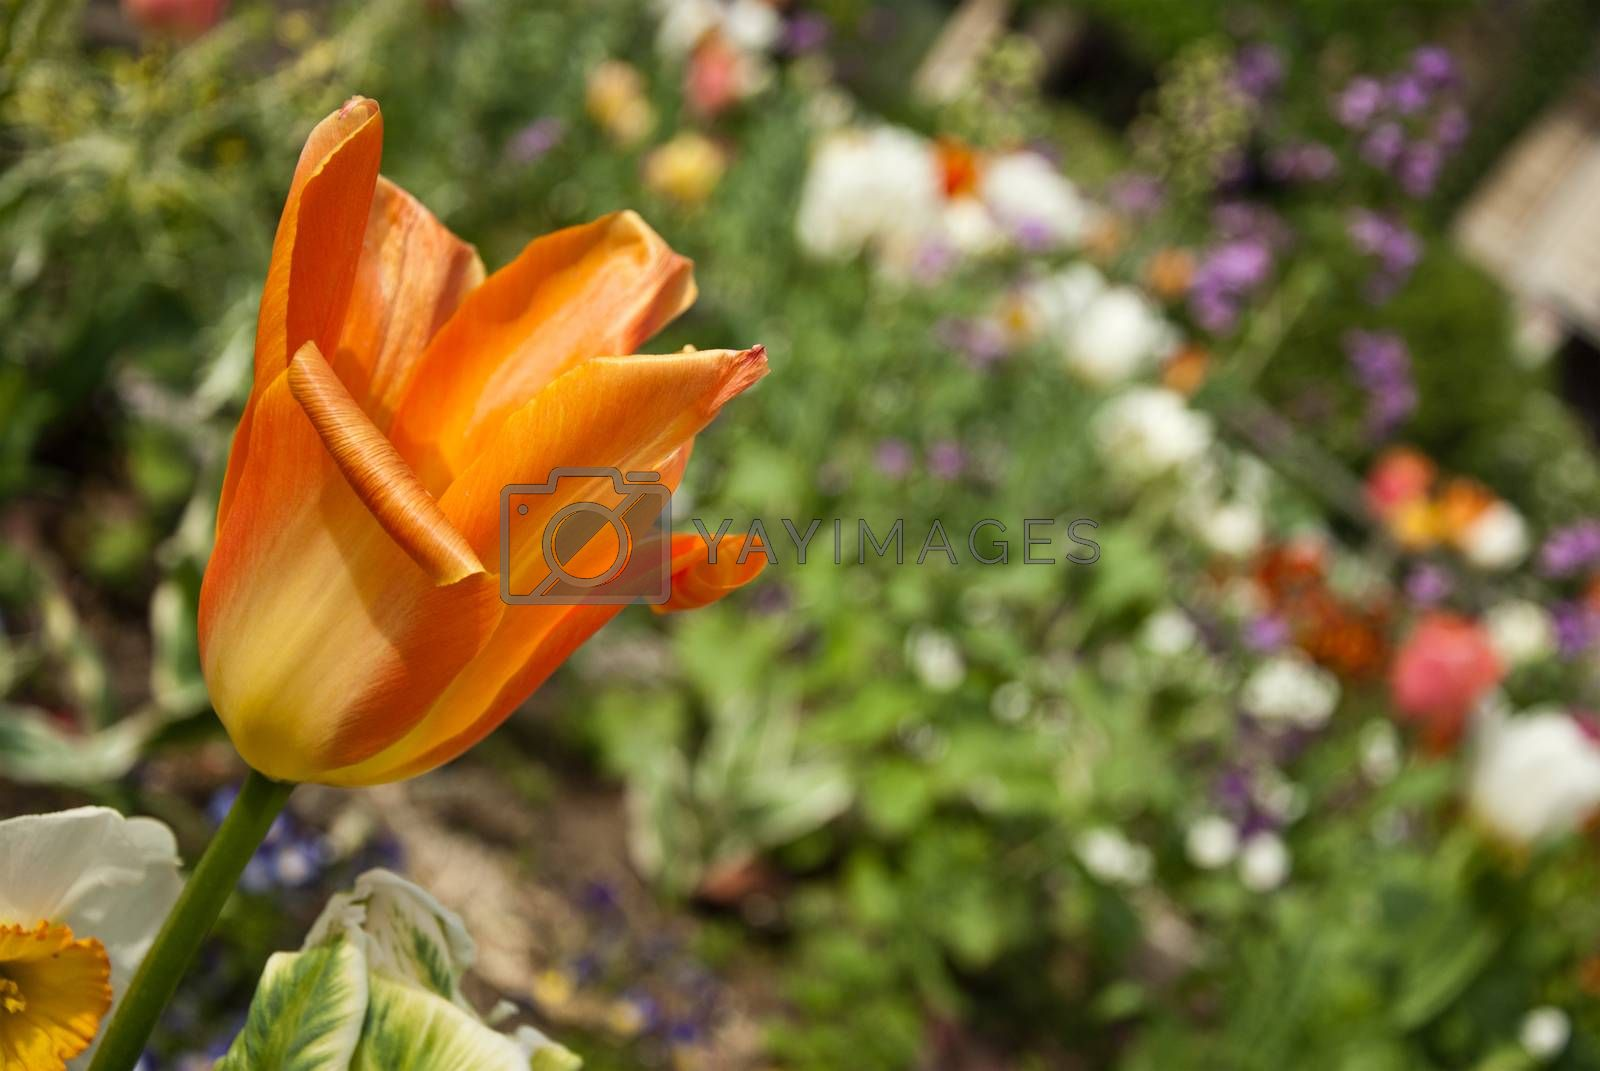 Royalty free image of tulip closeup on flowers background by NeydtStock